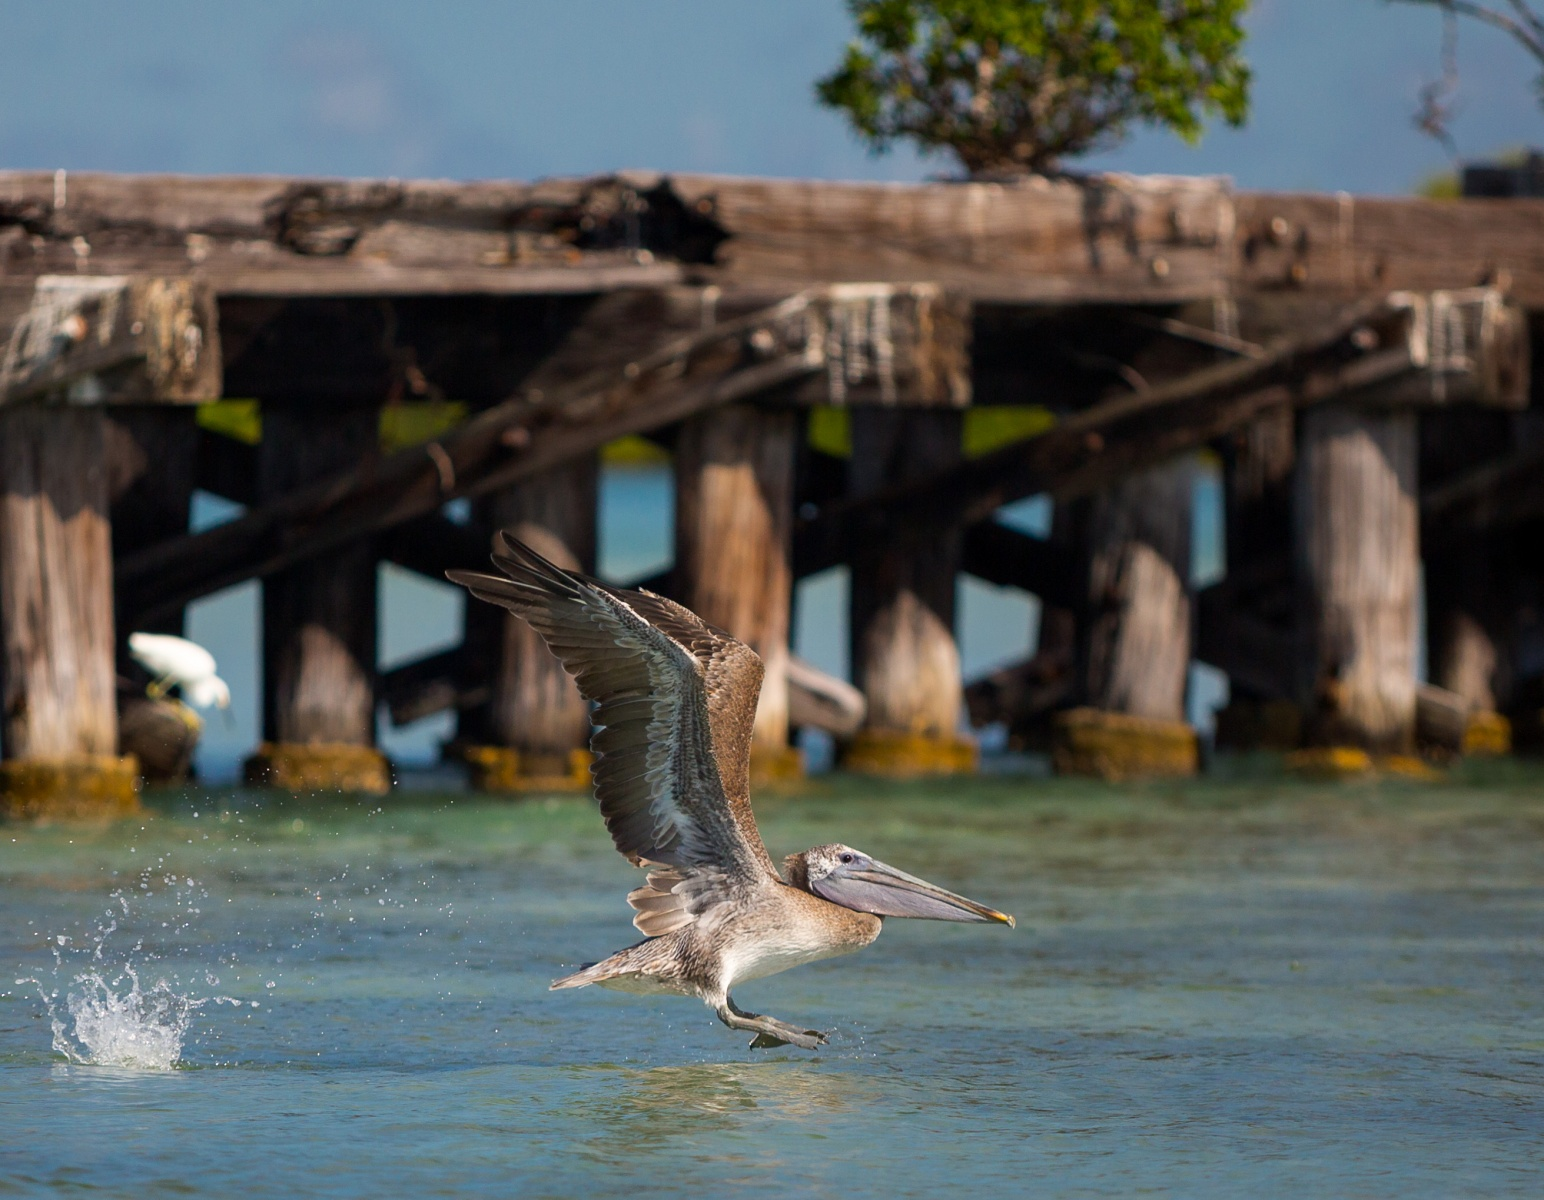 Brown pelican taking flight in front of the historic Boca Grande railroad trestle.